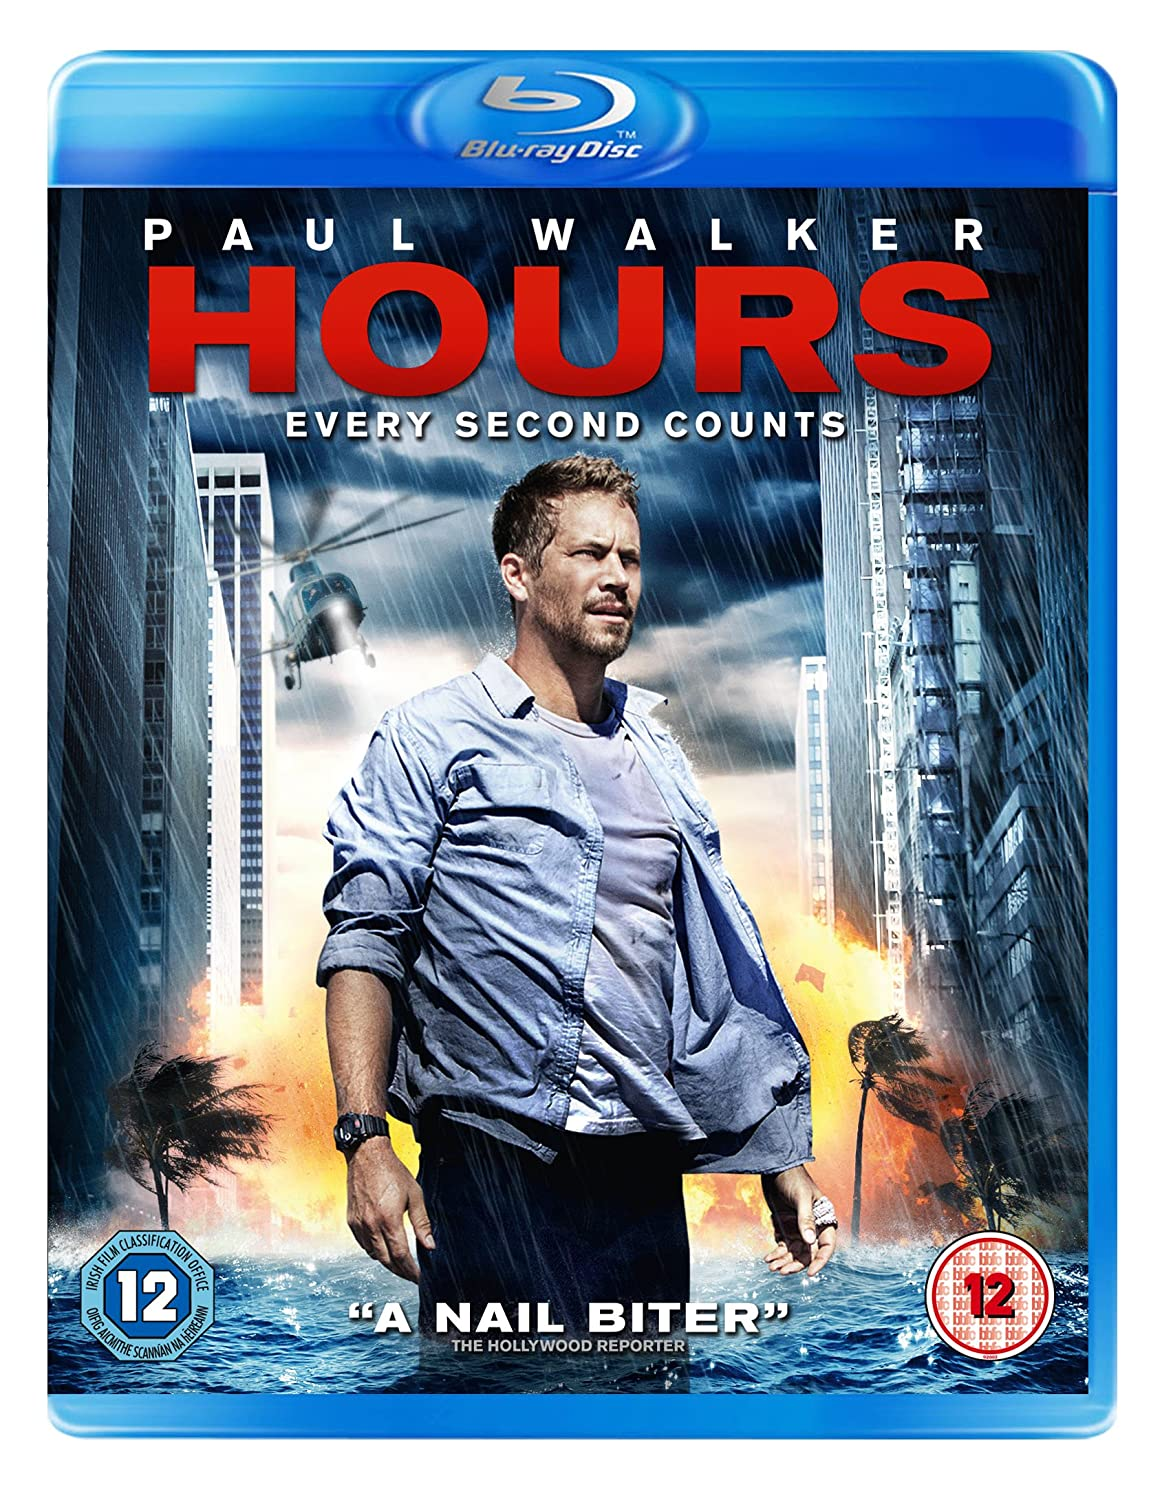 Cheap Blu-ray. Hours.Paul Walker.jpg